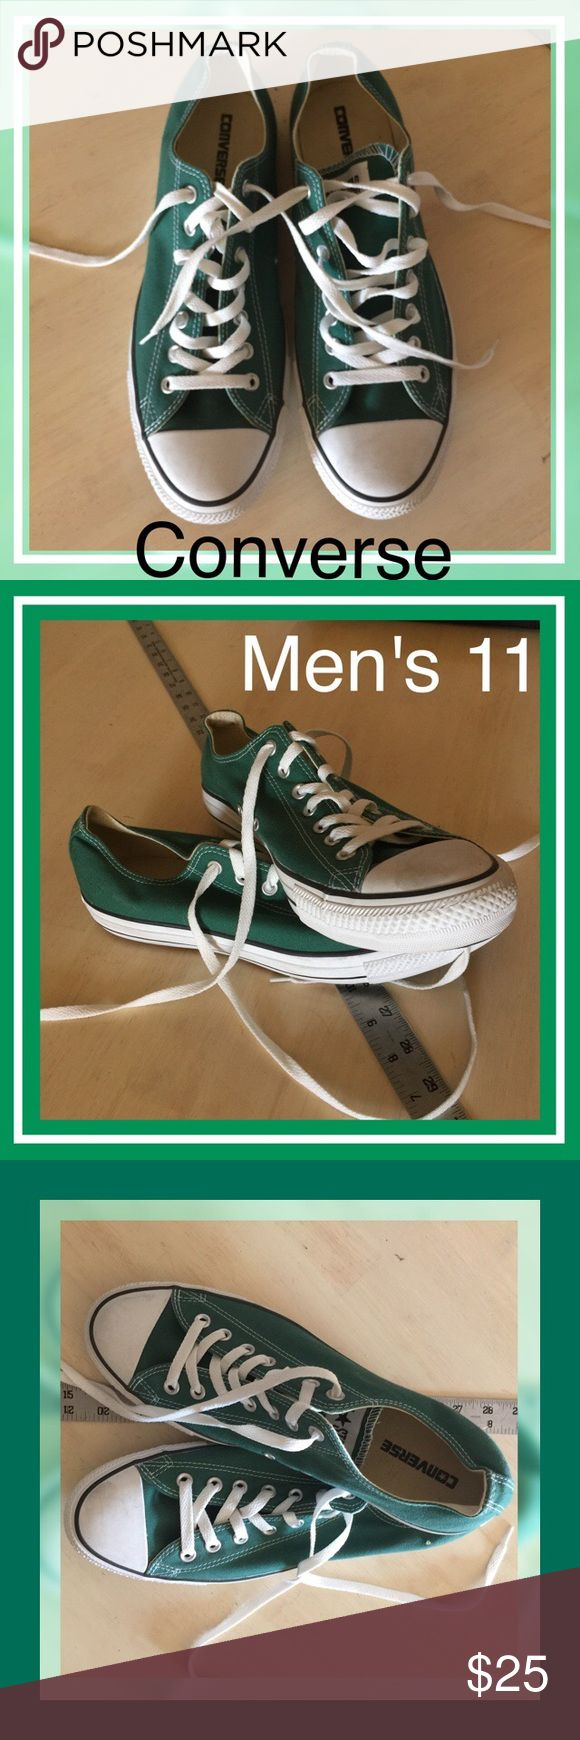 ⭐️NWOT Men's Converse Green Size 11 Men's Converse All Star Tennis shoes. Green Size 11. All orders are shipped same or next business day. Bundle to save even more money! Converse Shoes Sneakers